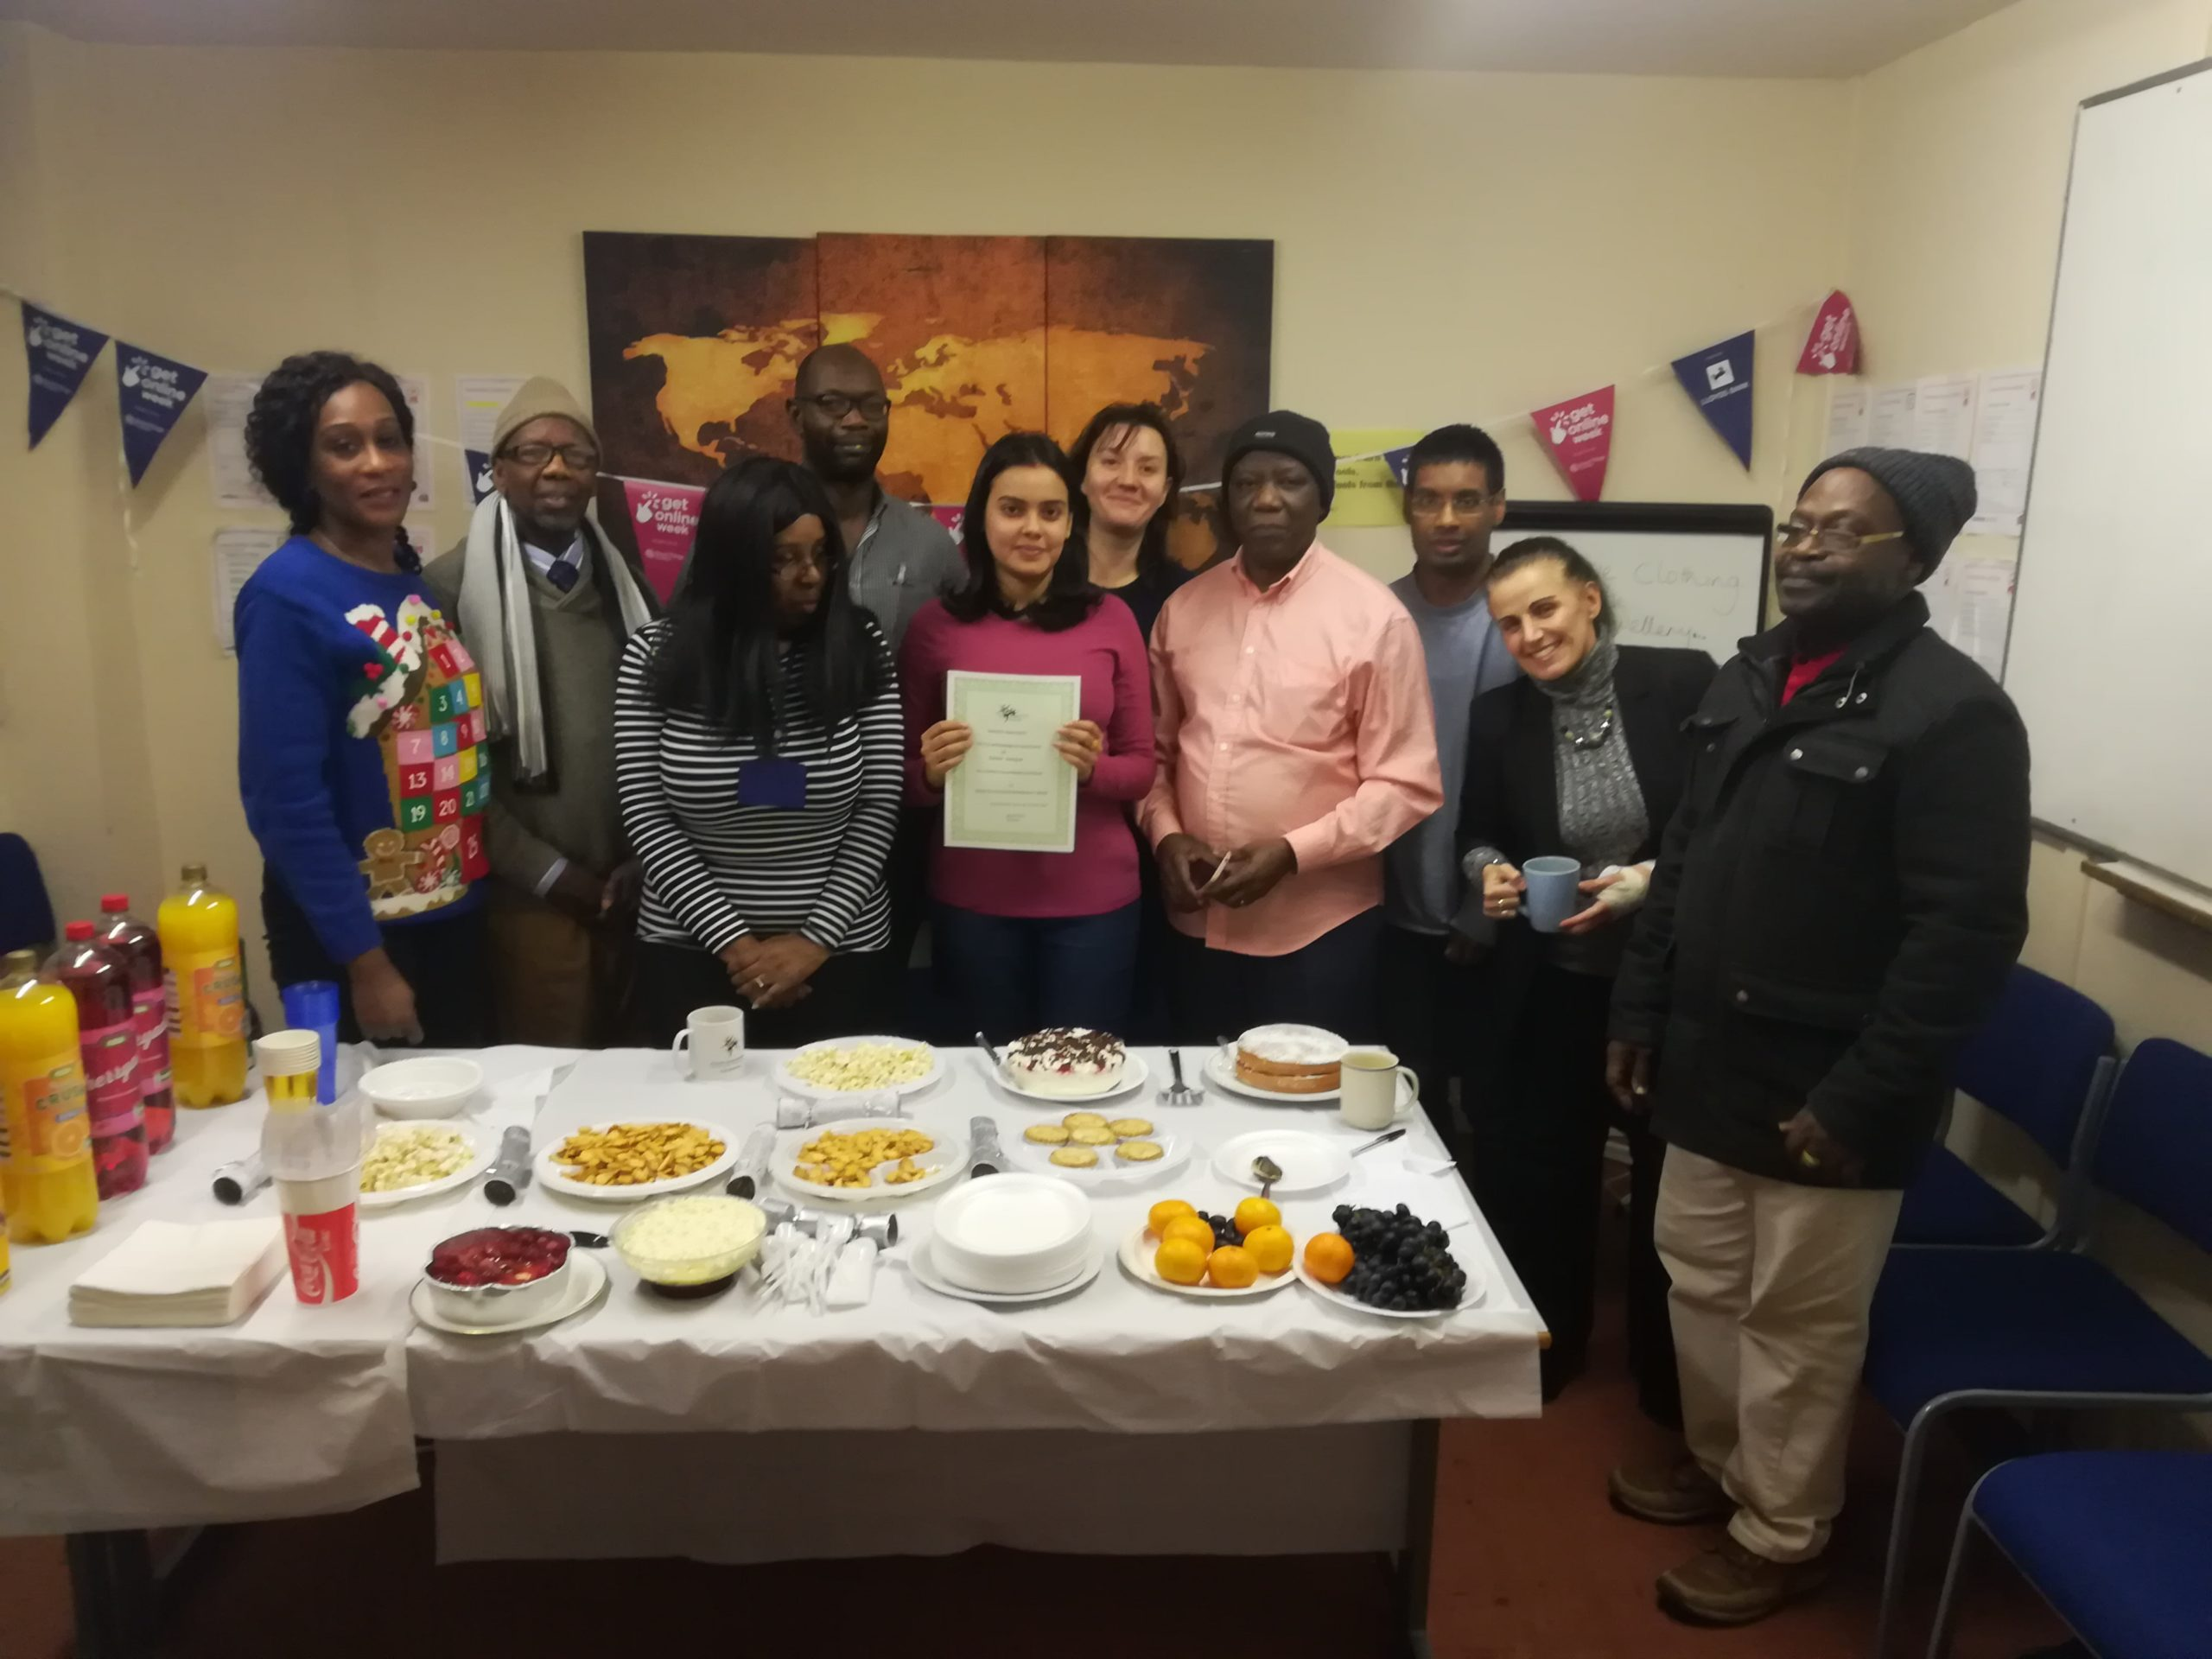 Celebration of volunteering achievement at end of year party